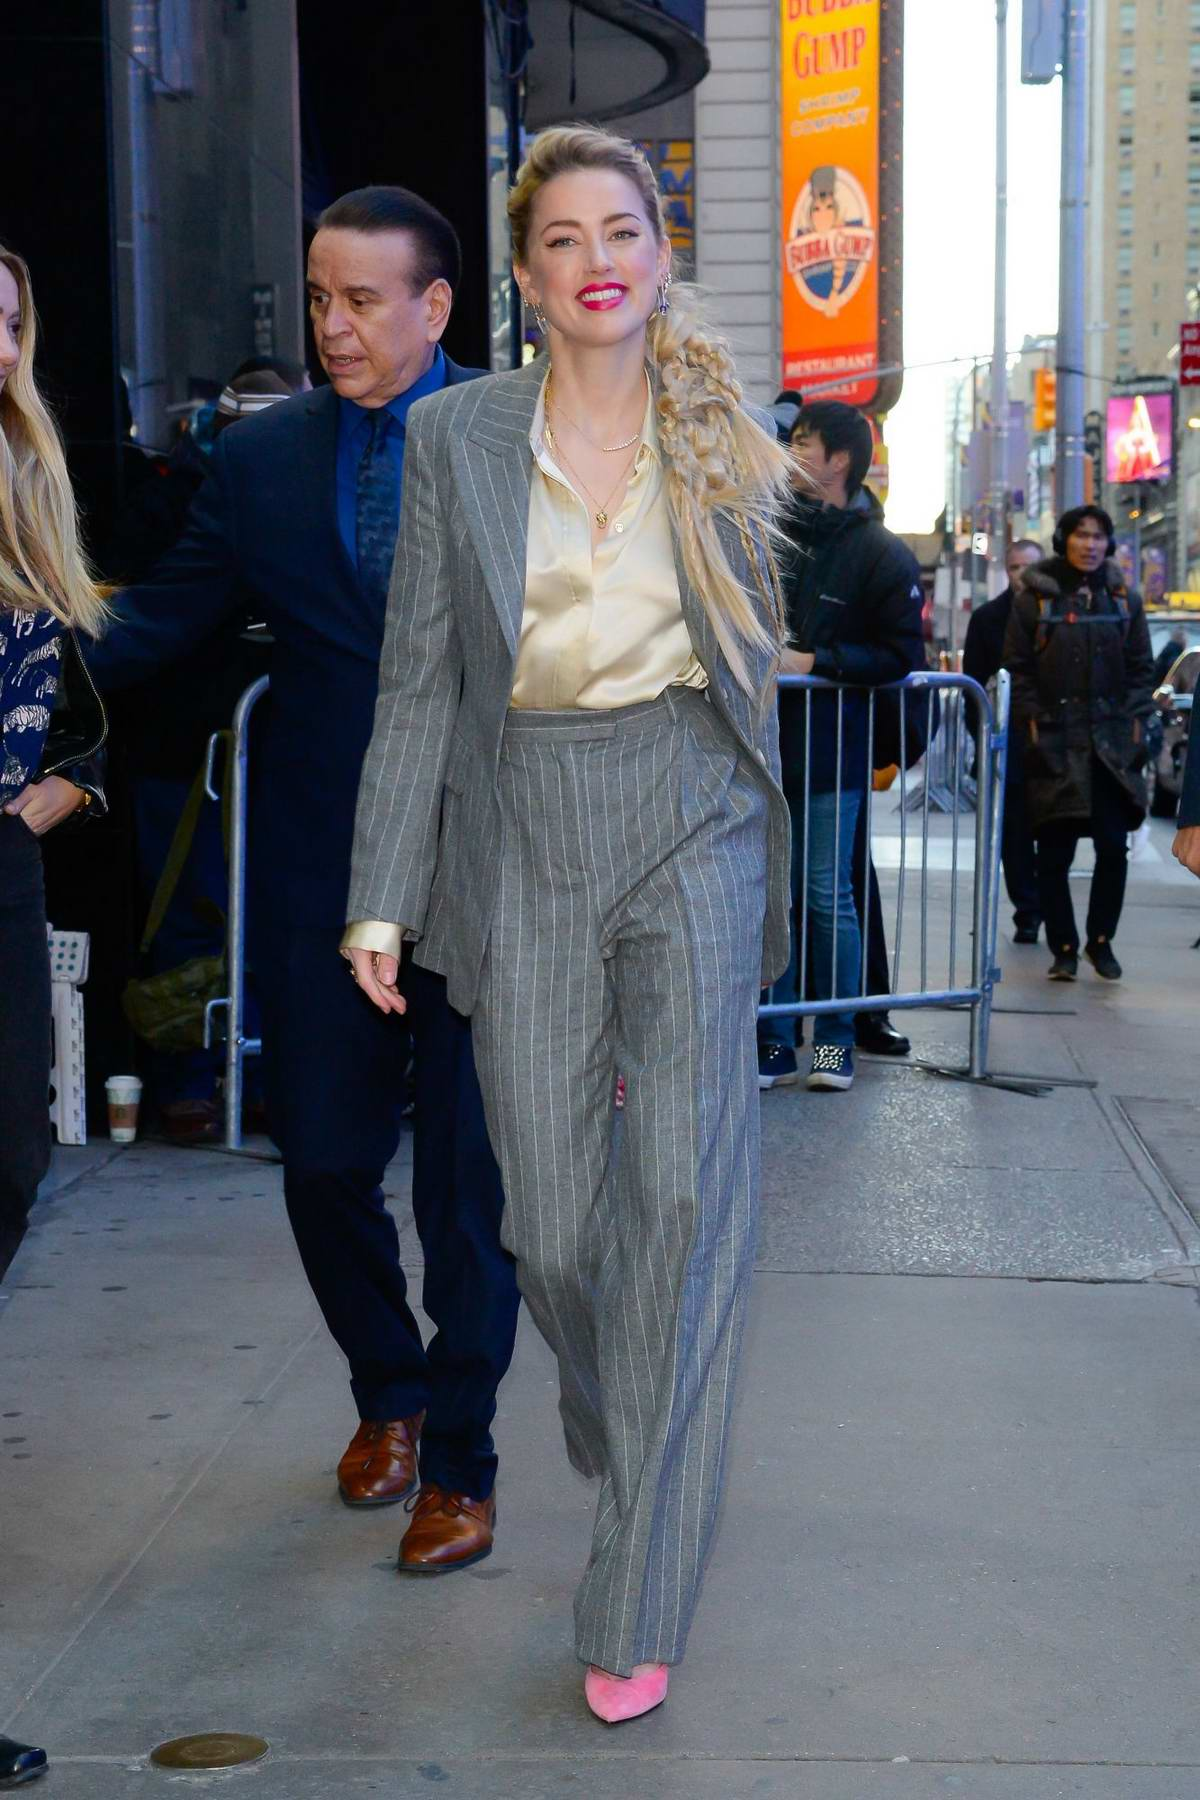 Amber Heard wears a pinstriped grey suit as she arrives at 'Good Morning America' studios in New York City